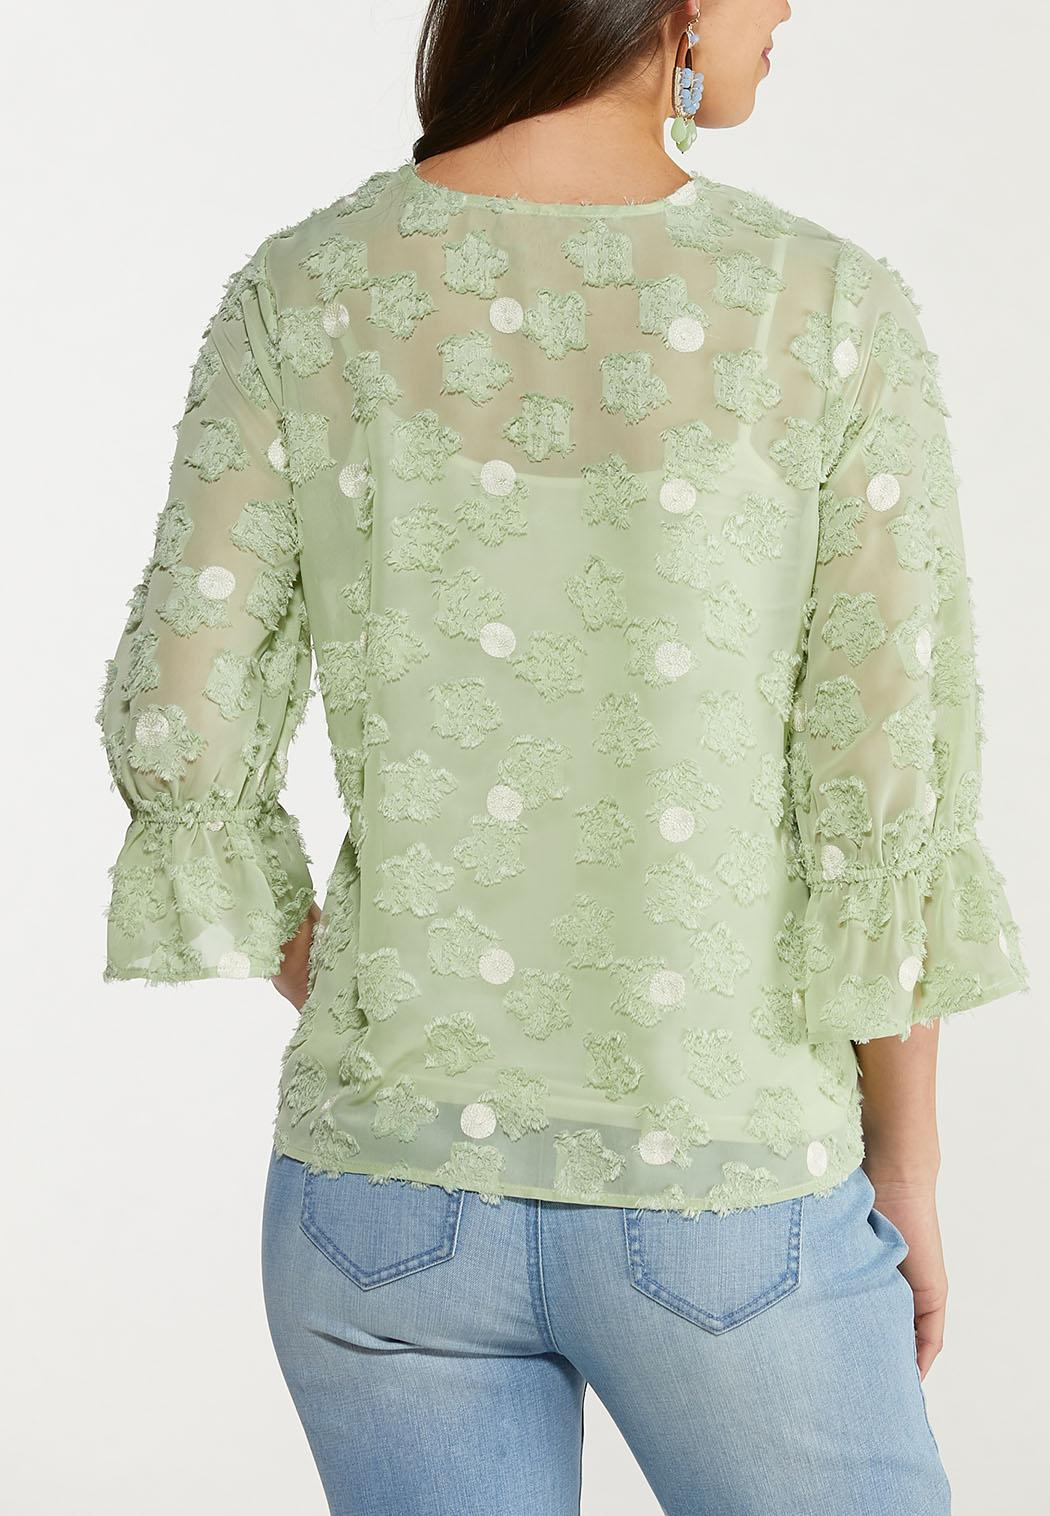 Dotted Green Textured Top (Item #44536775)